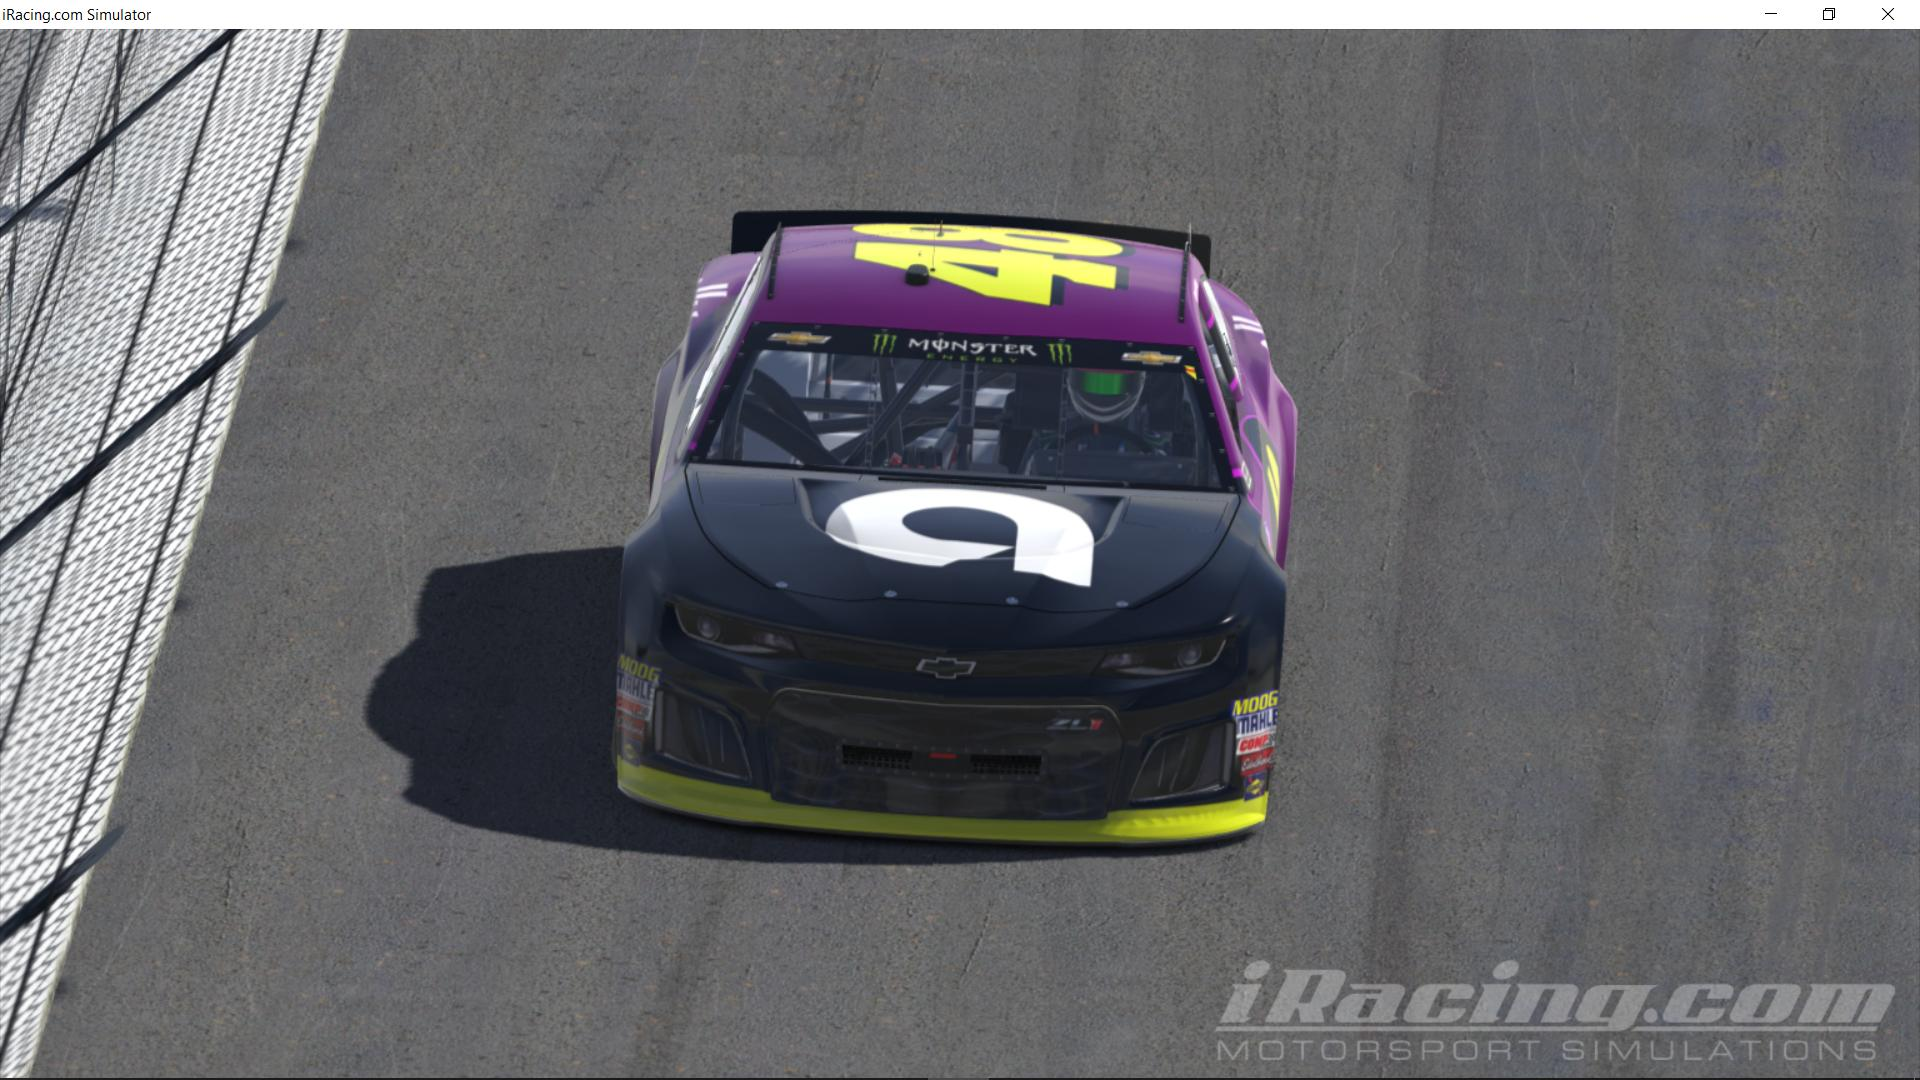 Preview of 2019 Jimmie Johnson Ally Financial (Fictional) by Justin Bland